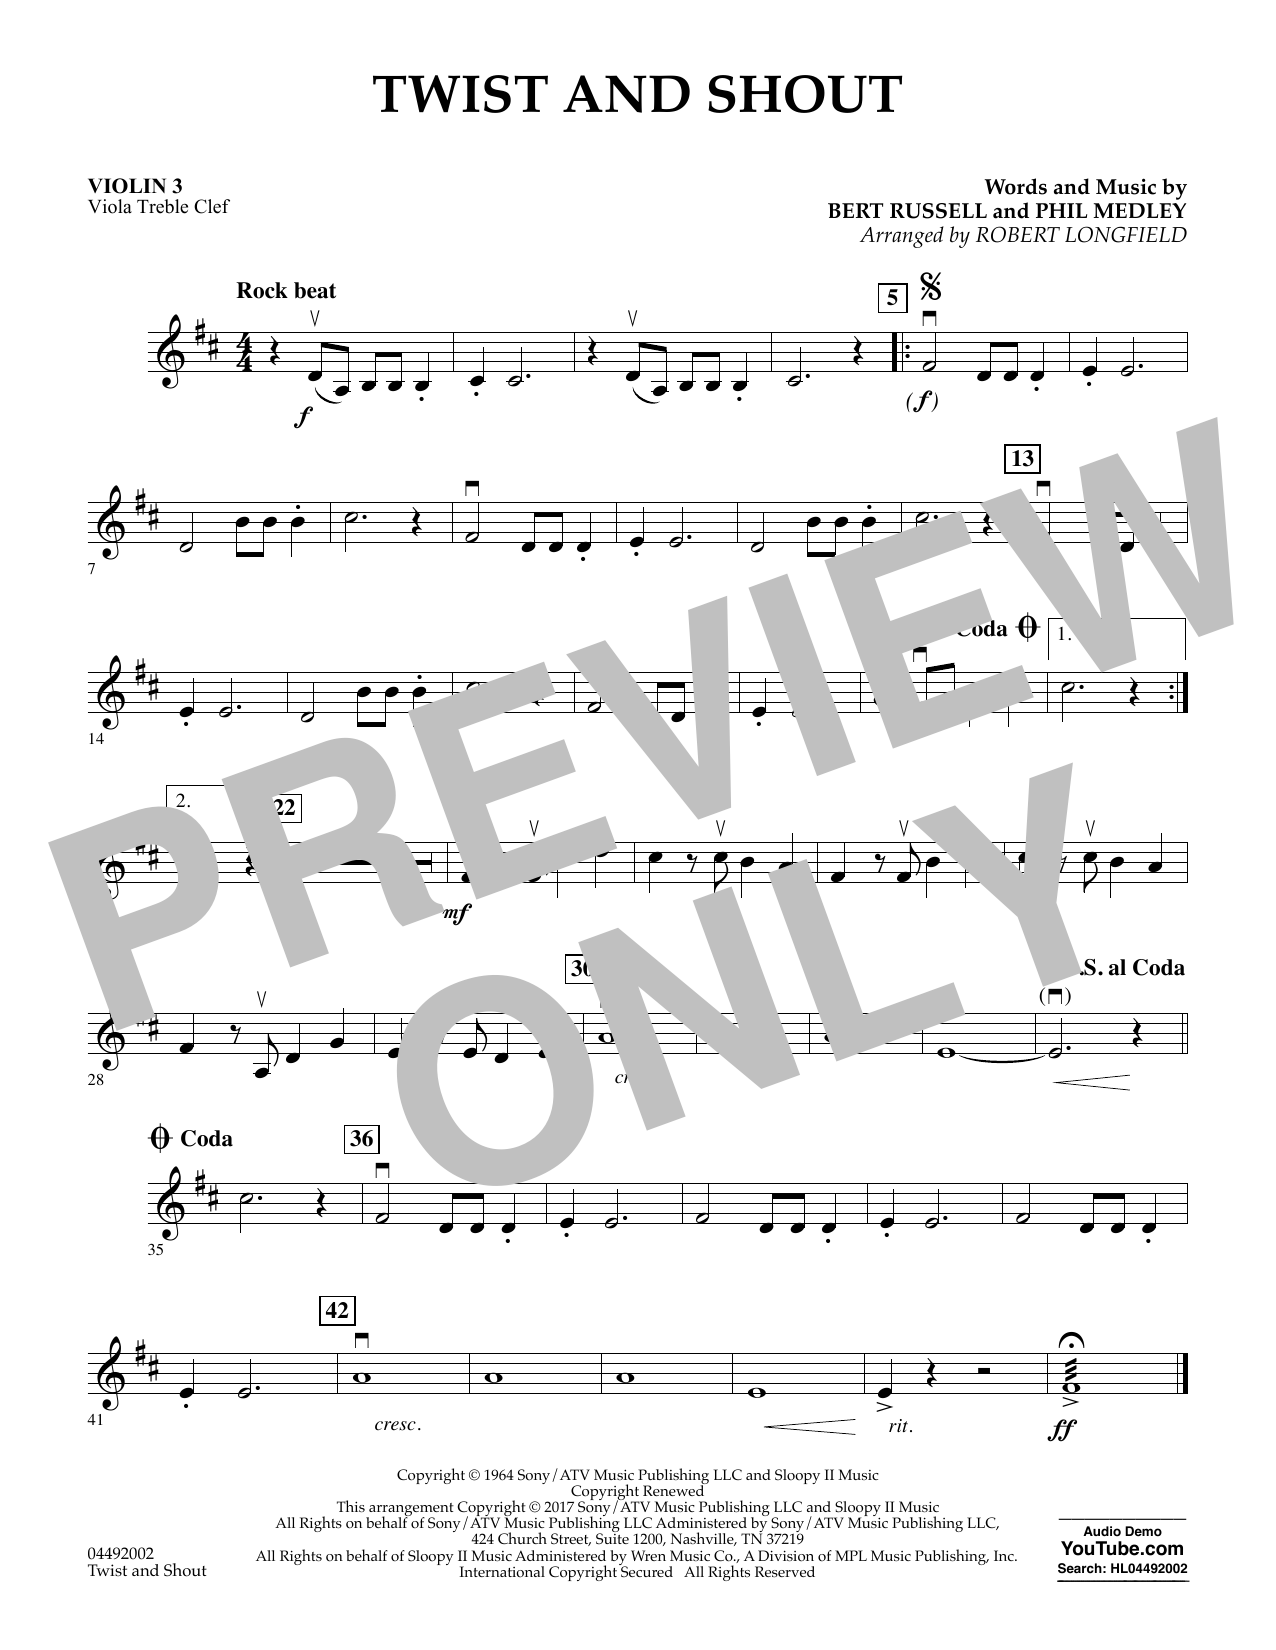 Robert Longfield Twist and Shout - Violin 3 (Viola Treble Clef) sheet music notes and chords. Download Printable PDF.